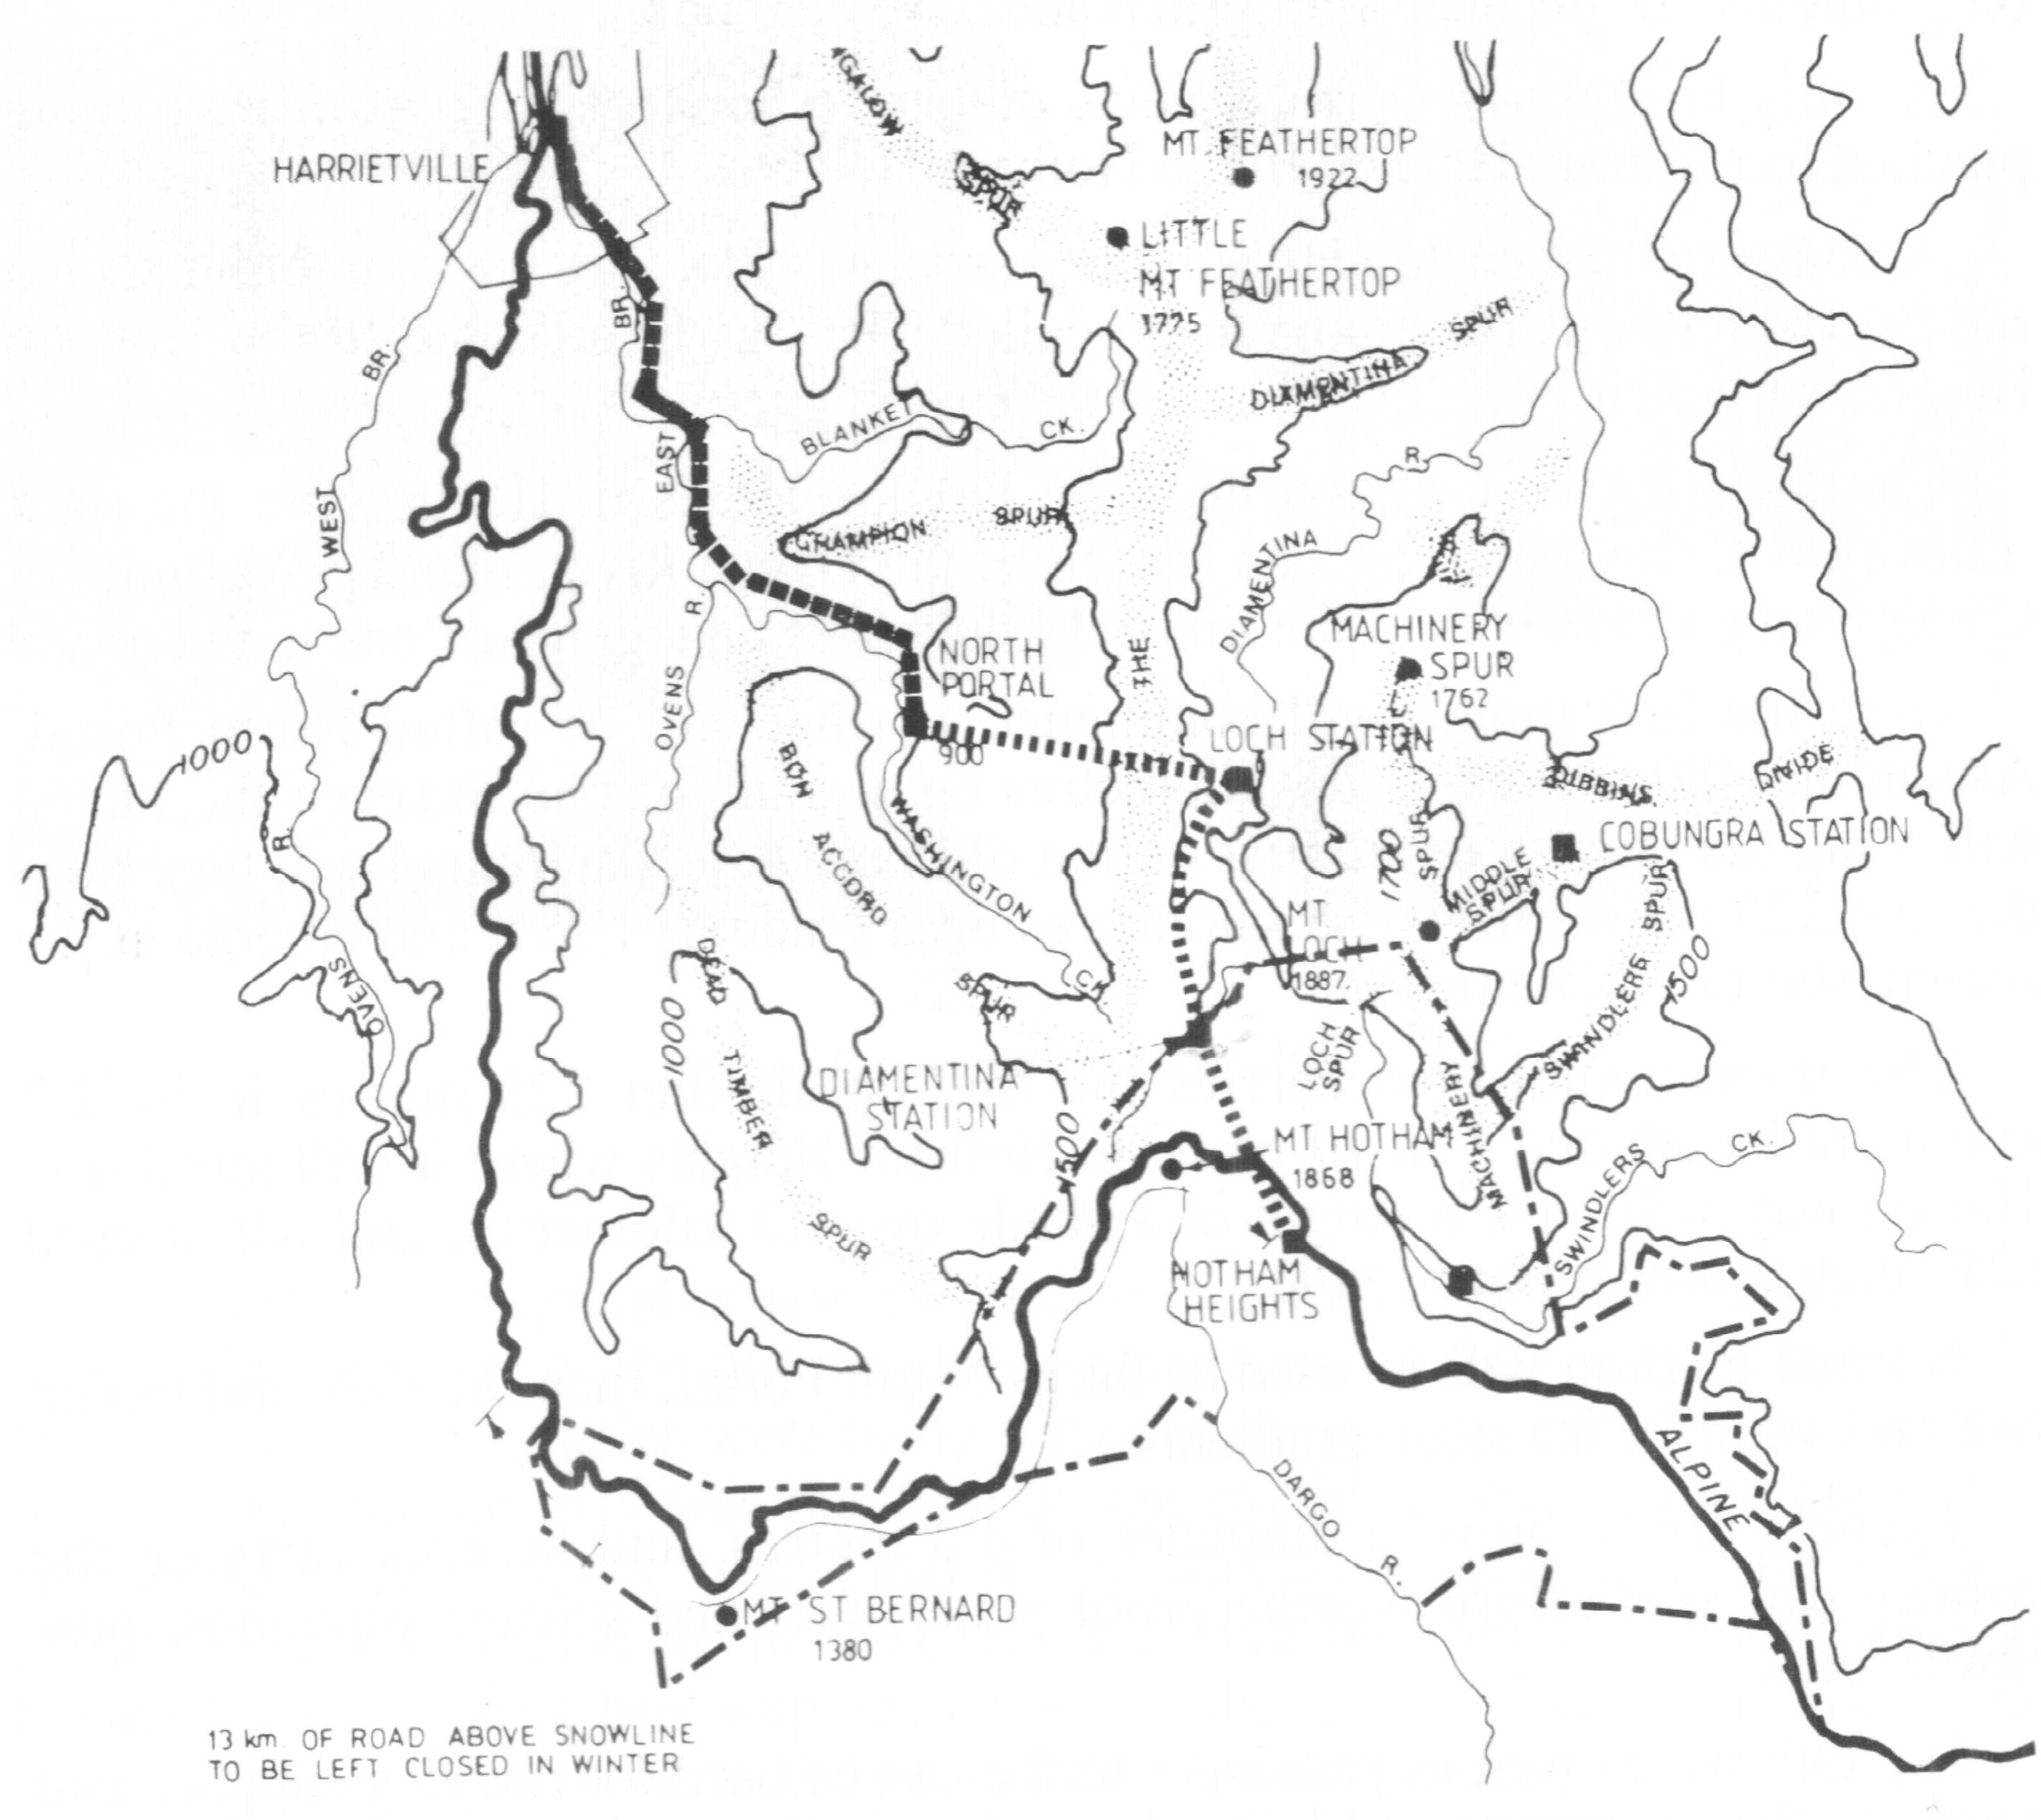 The proposed railway from Harrietville to Hotham with a station on the Razorback. From Wal Larsen. The Ovens Valley Railway. 2nd ed, 1997. p. 160.